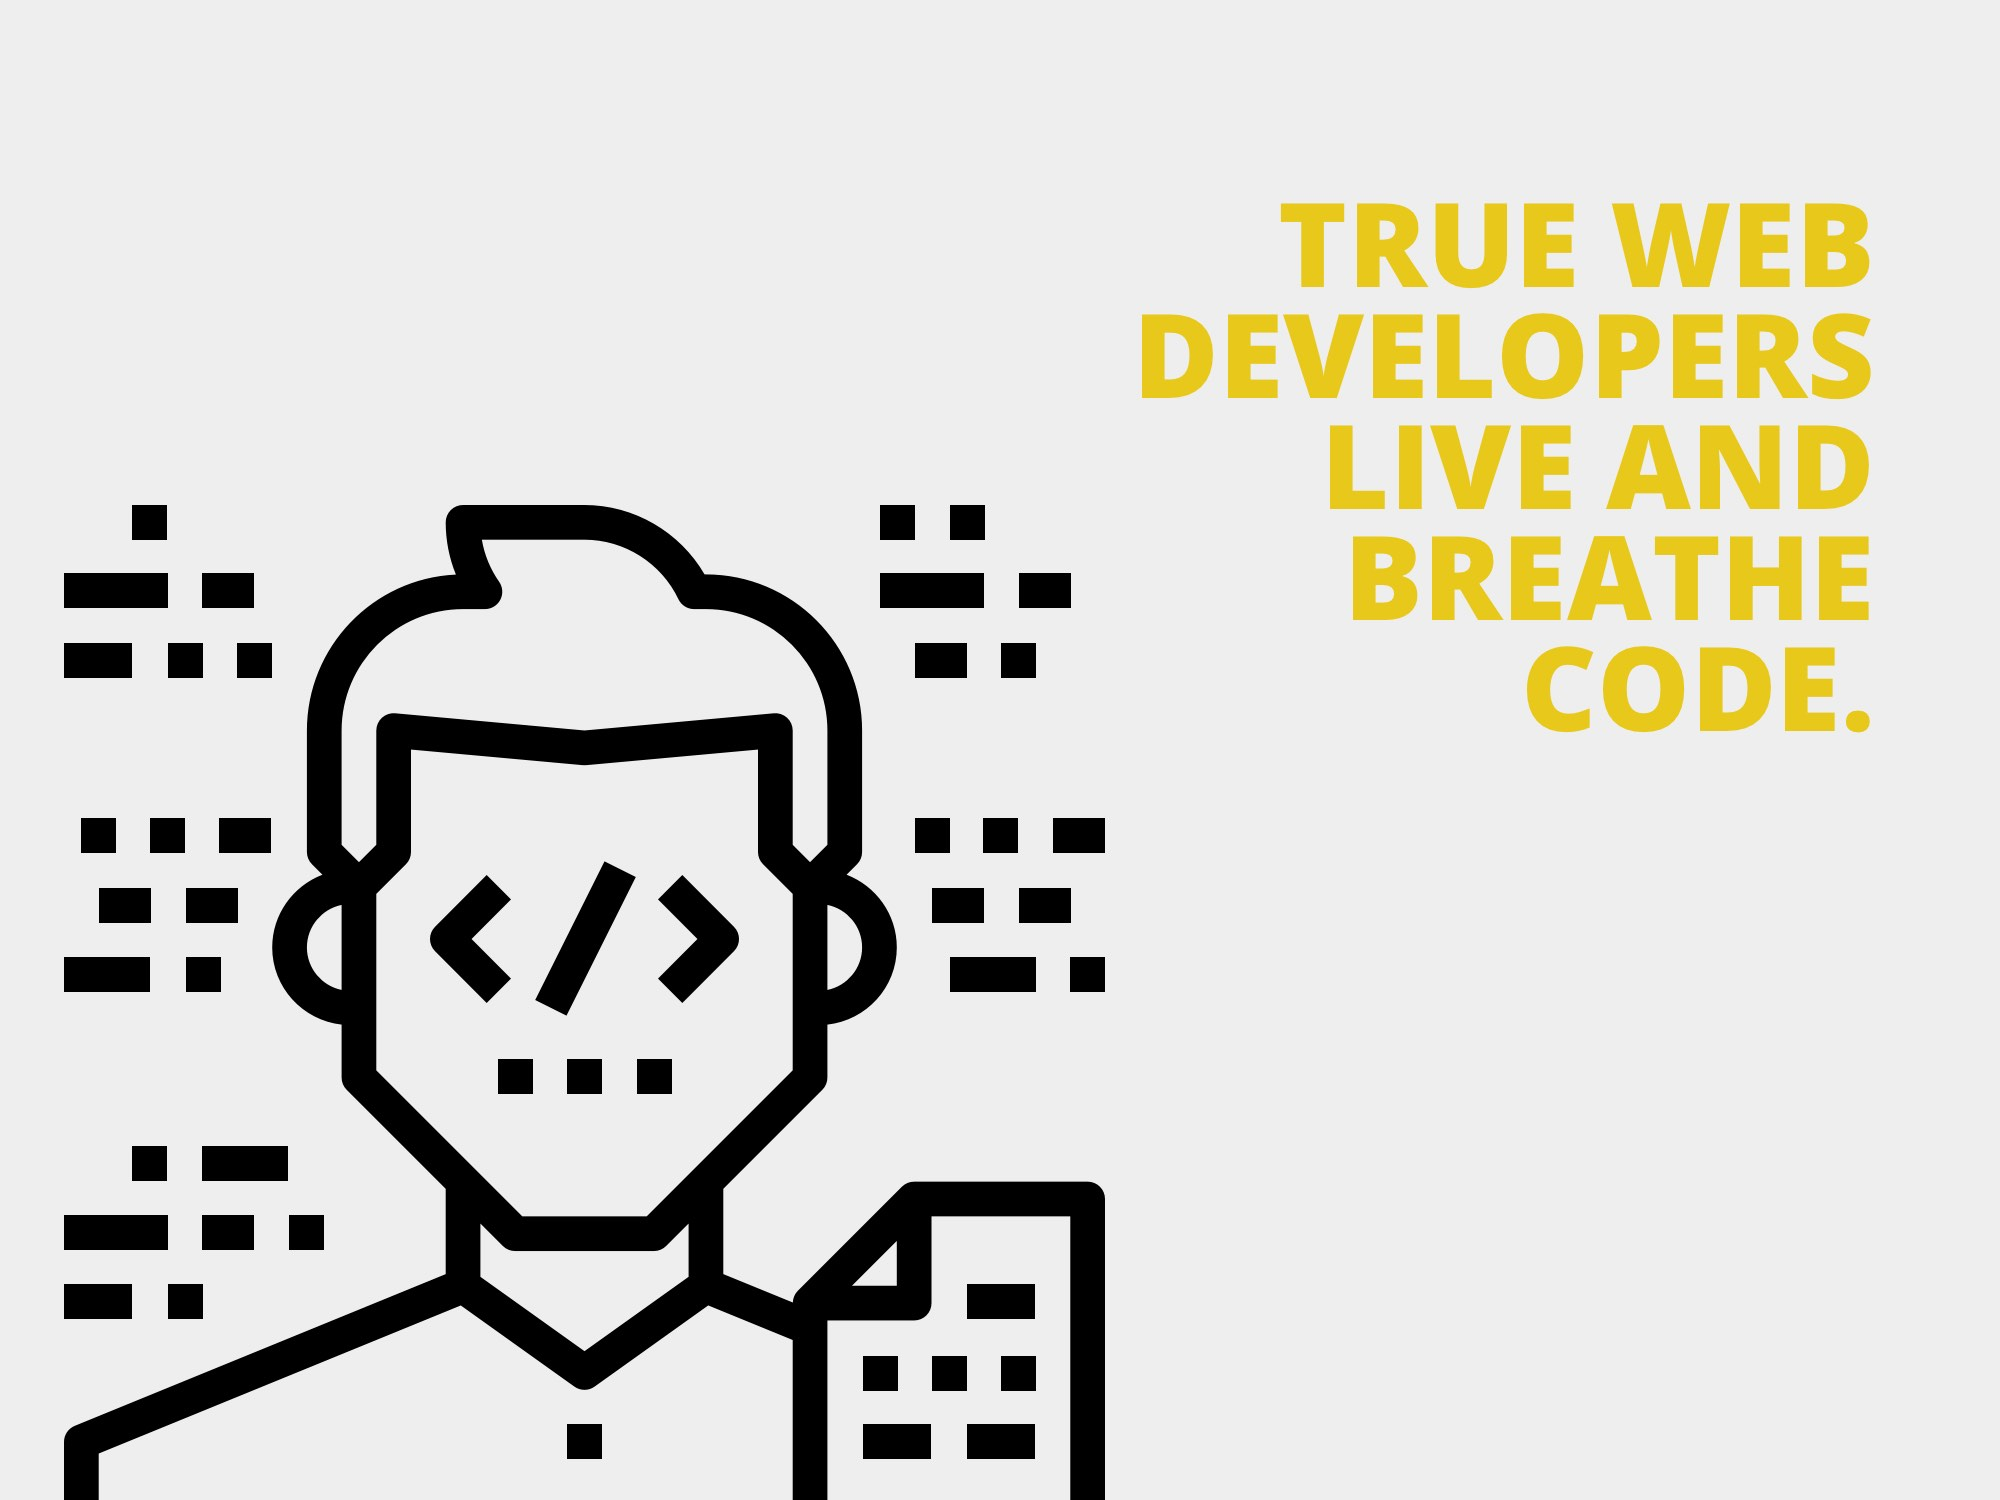 true web developers live and breathe code